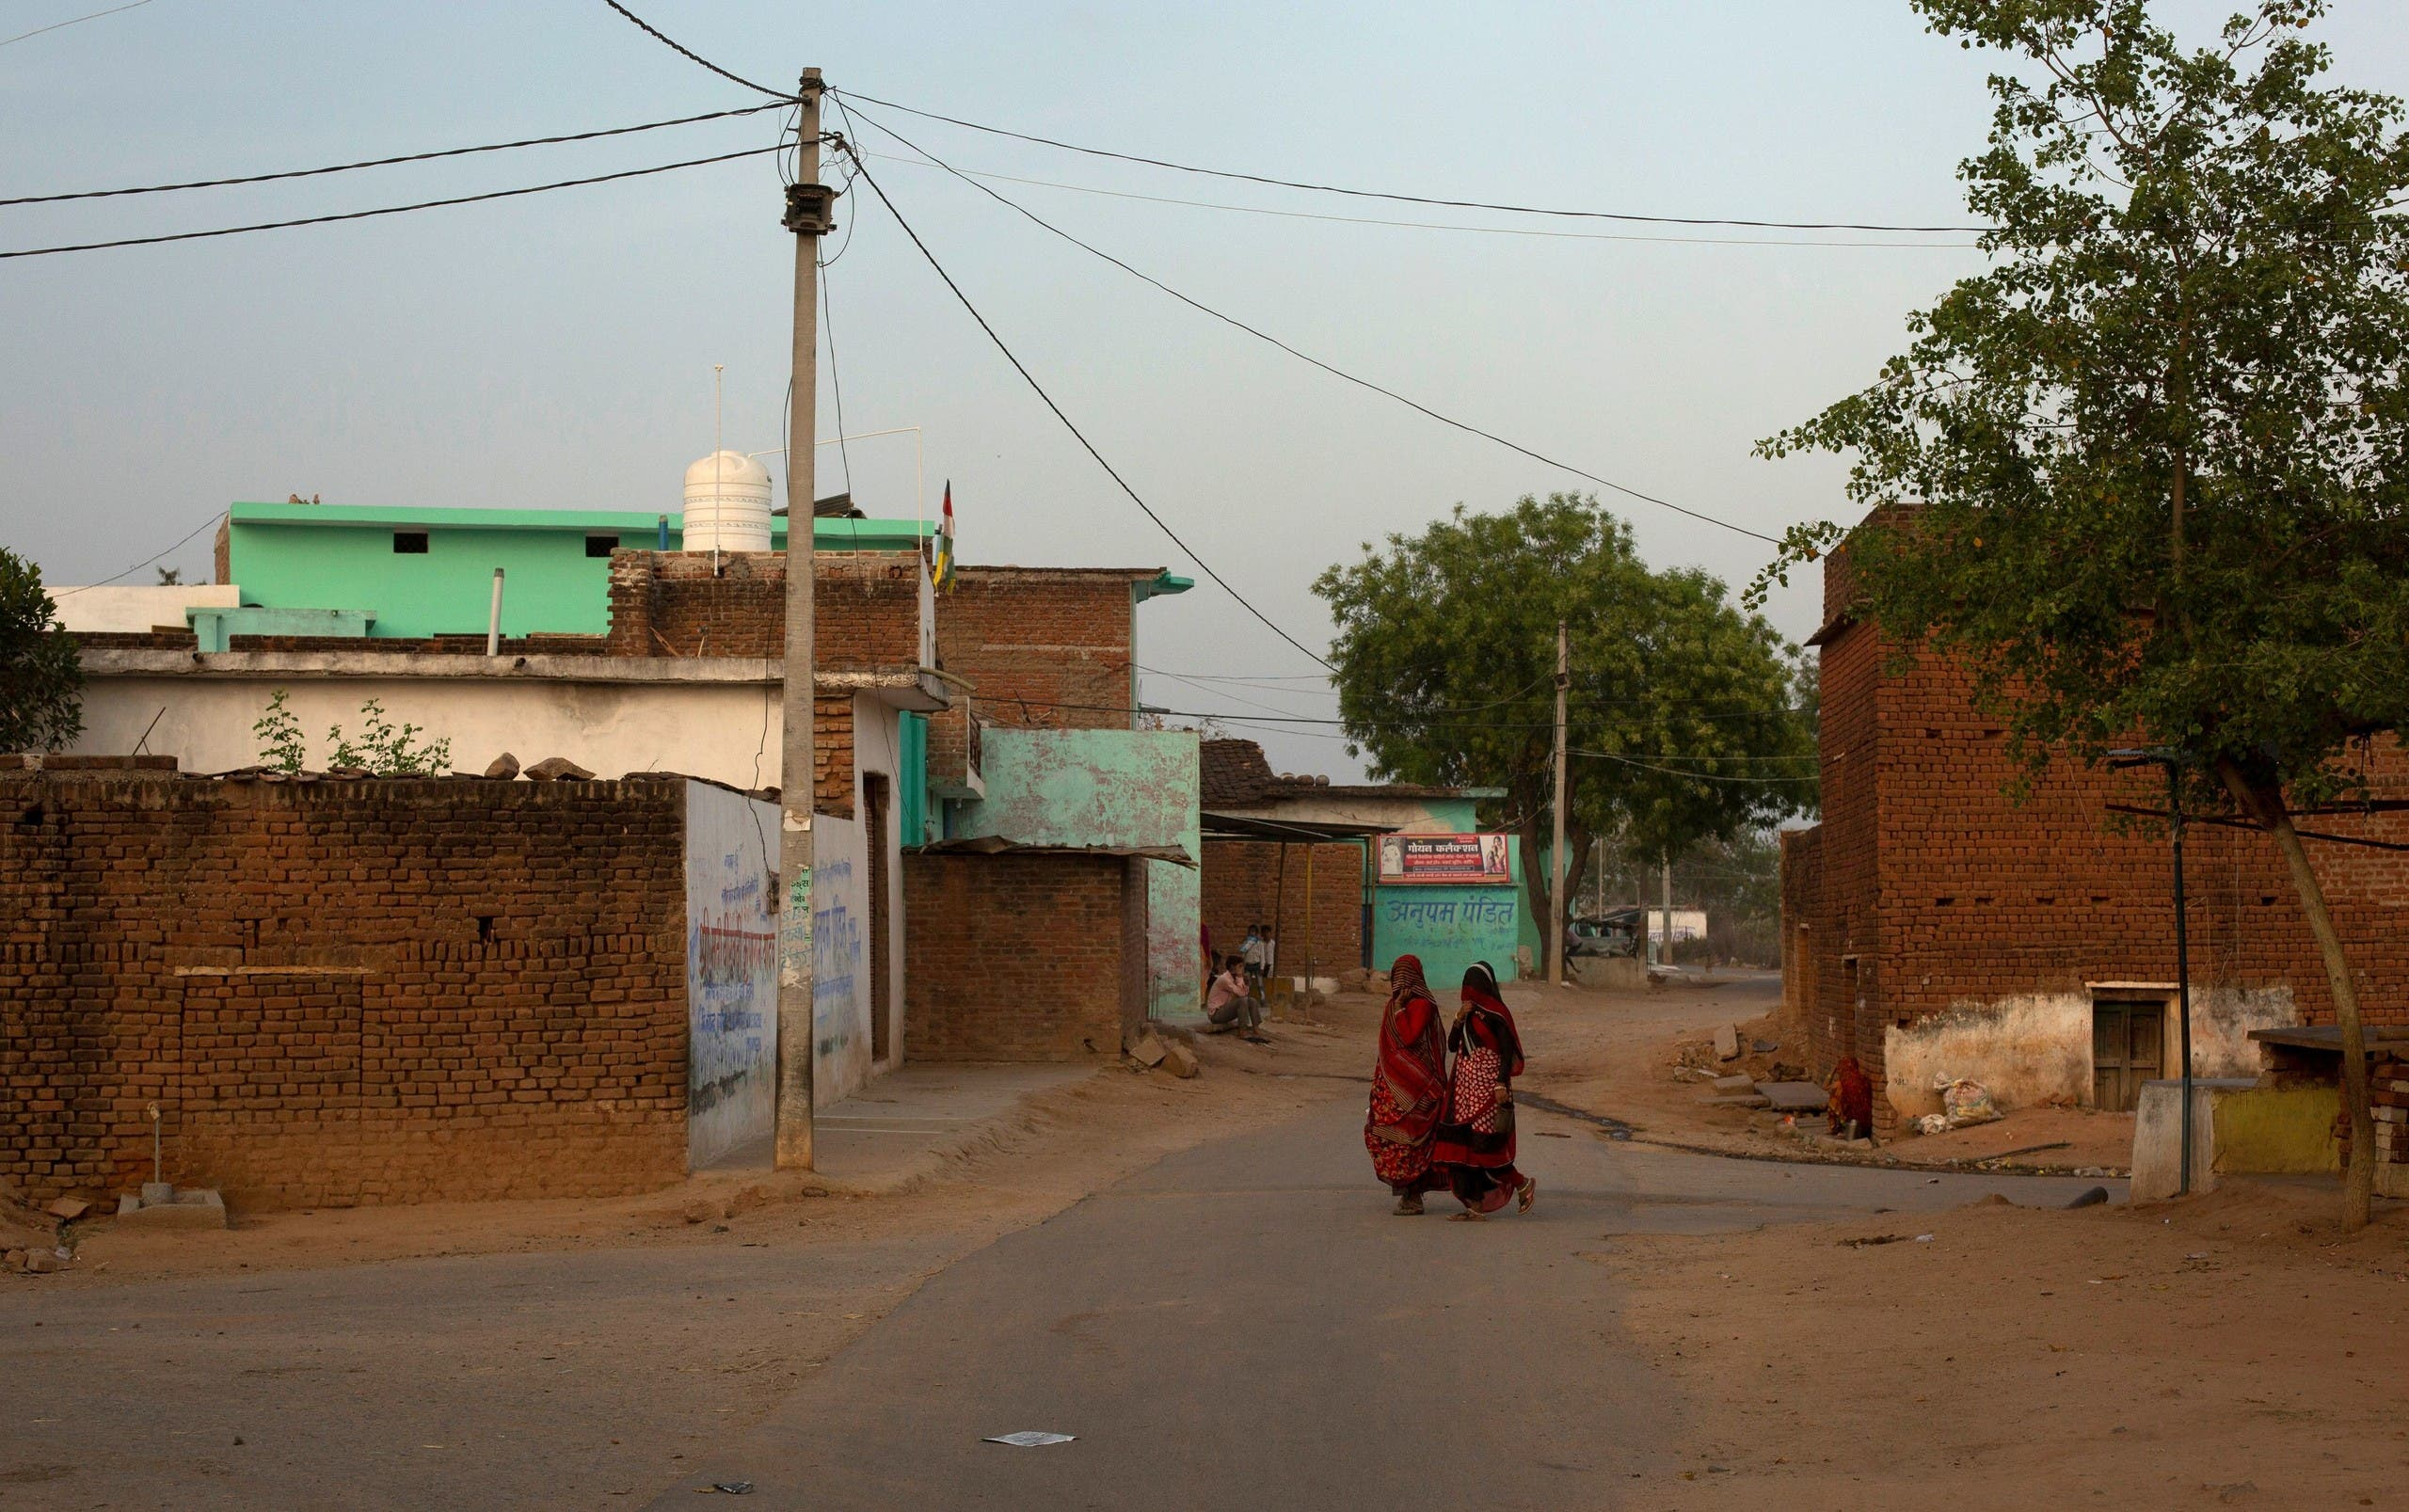 Women walk through an empty street during nationwide lockdown, in Jugyai village in the central state of Madhya Pradesh, India, on April 8, 2020. (Reuters)